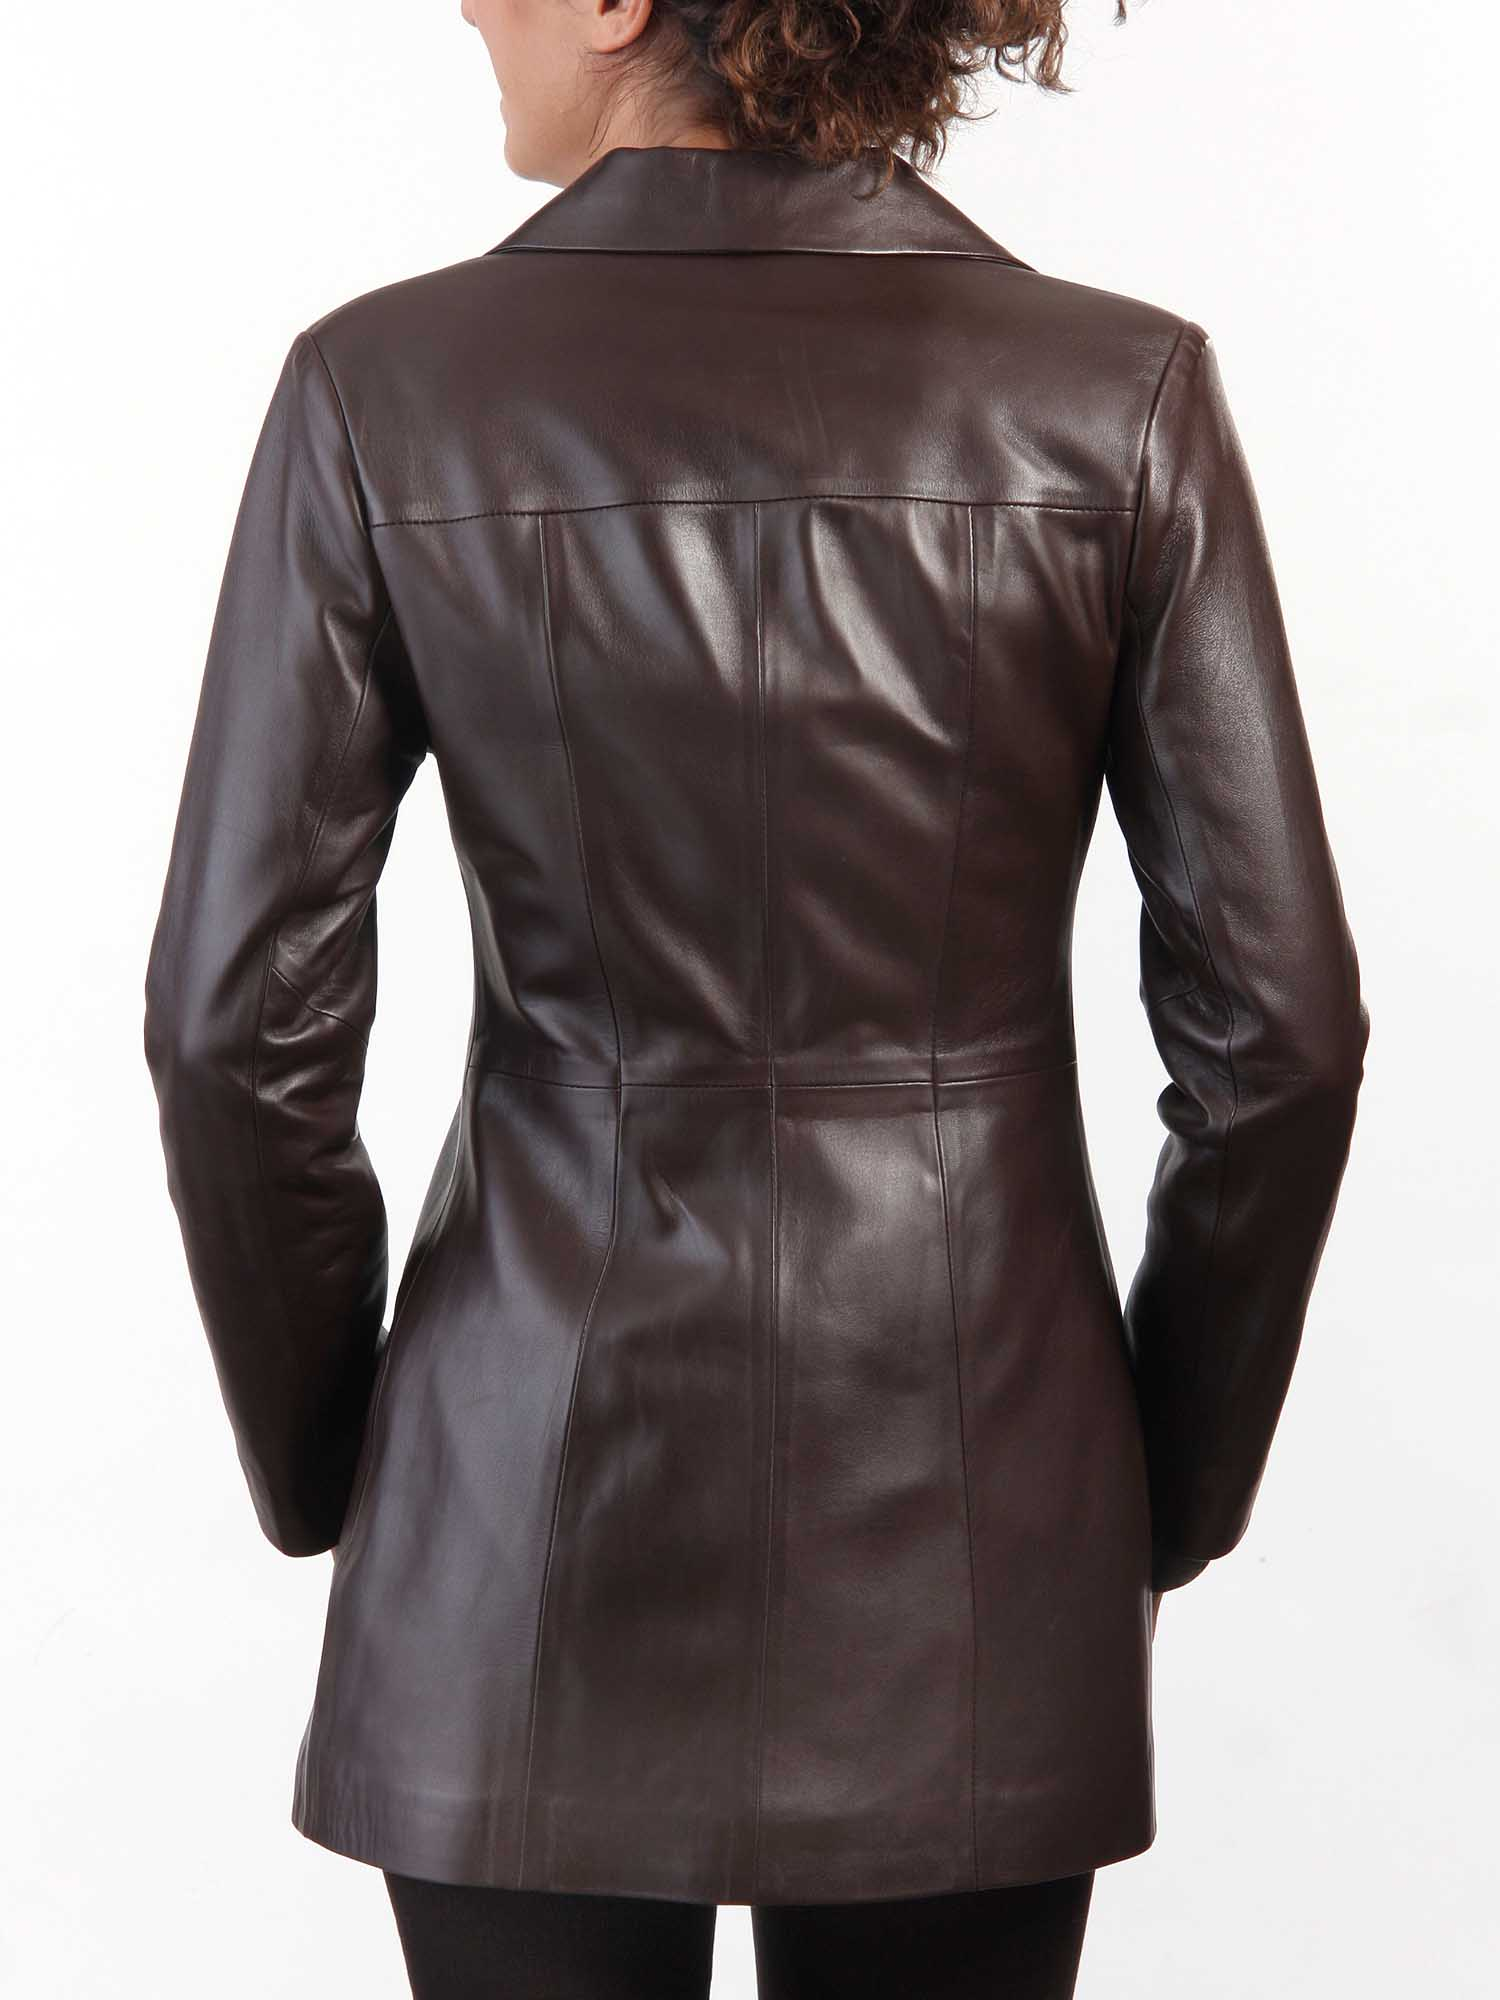 Chic Ladies Leather jacket